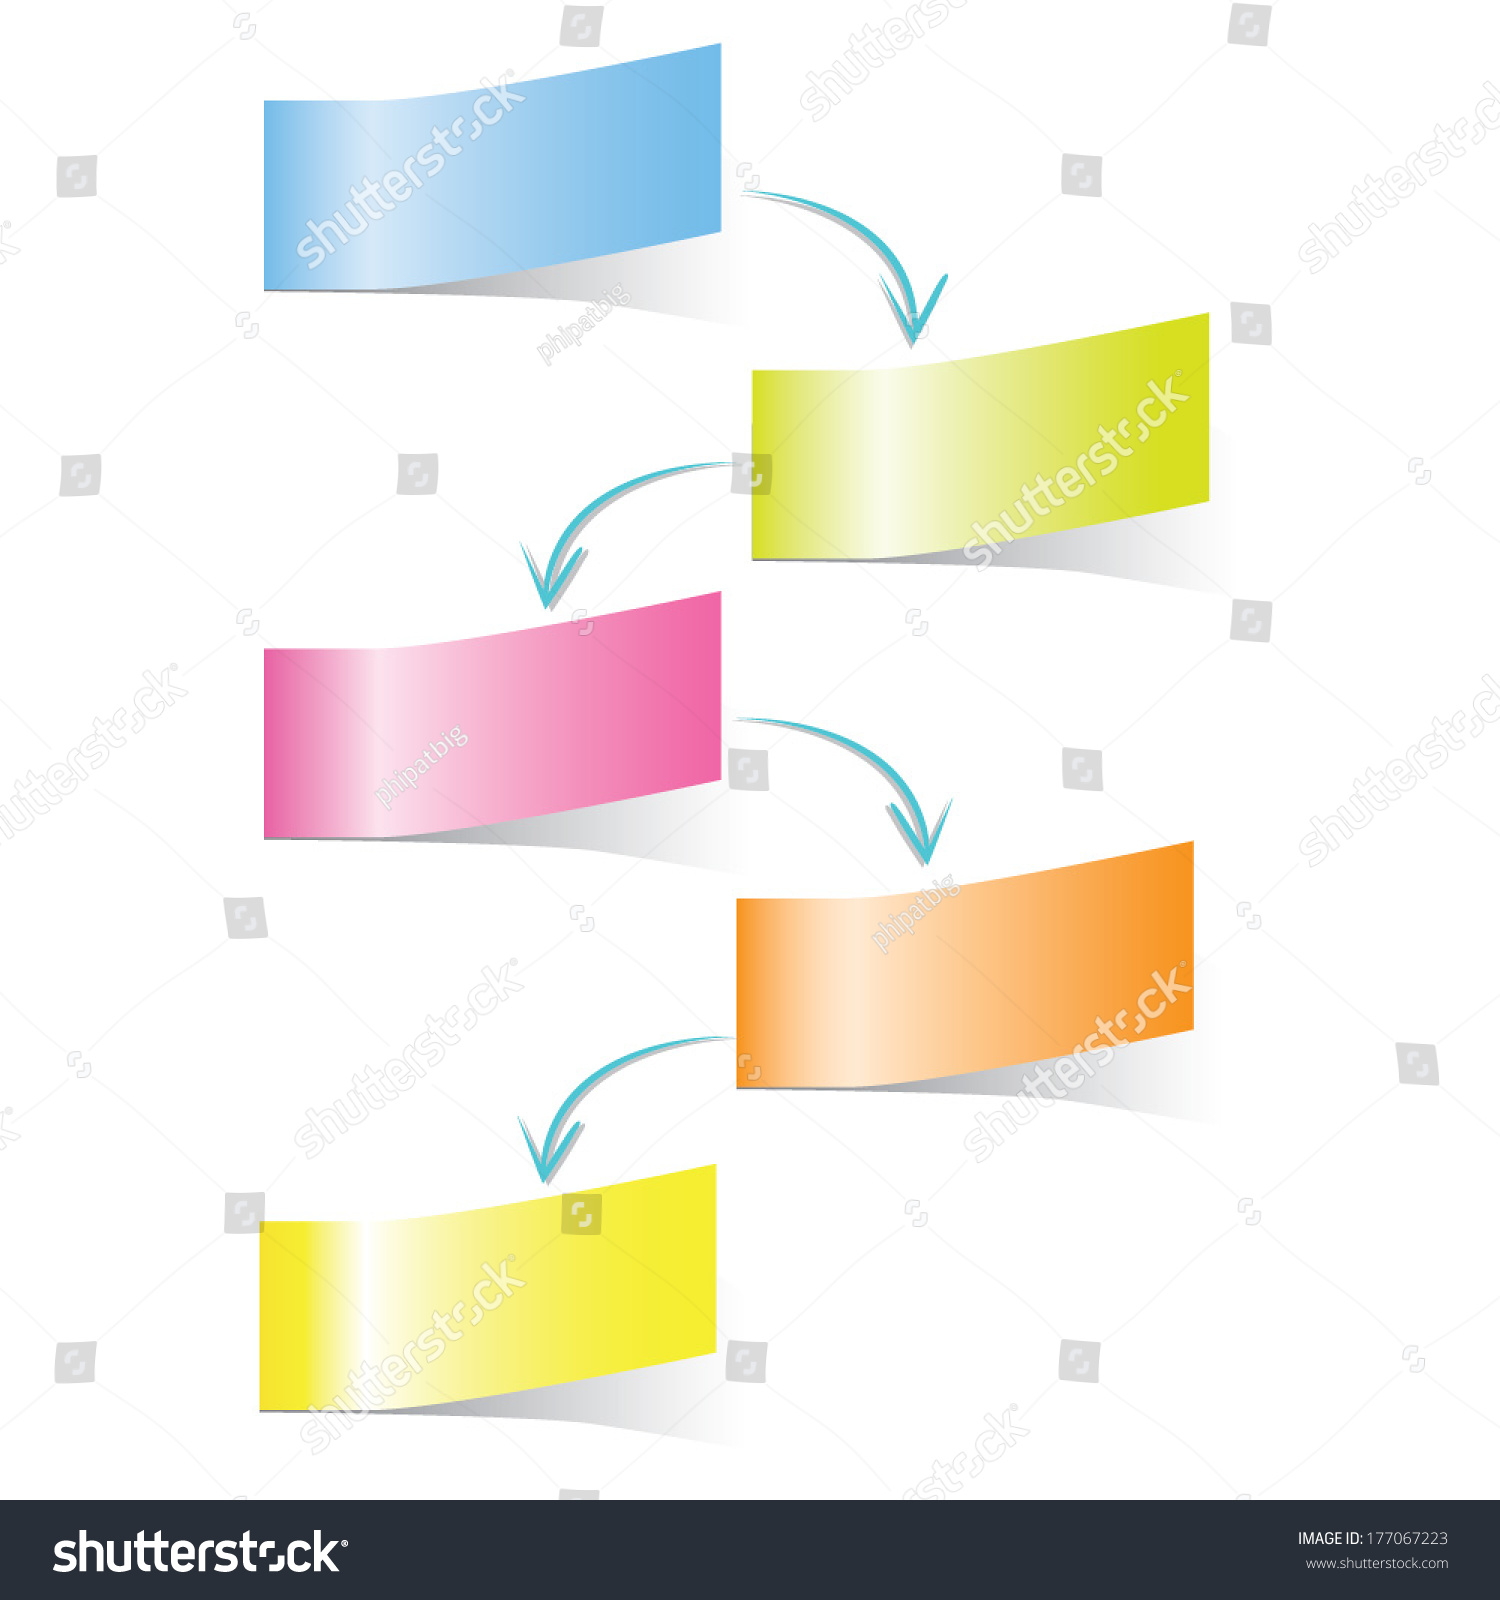 Process Flow Diagram Sticky Notes Concept Stock Vector Royalty Free Pictures In